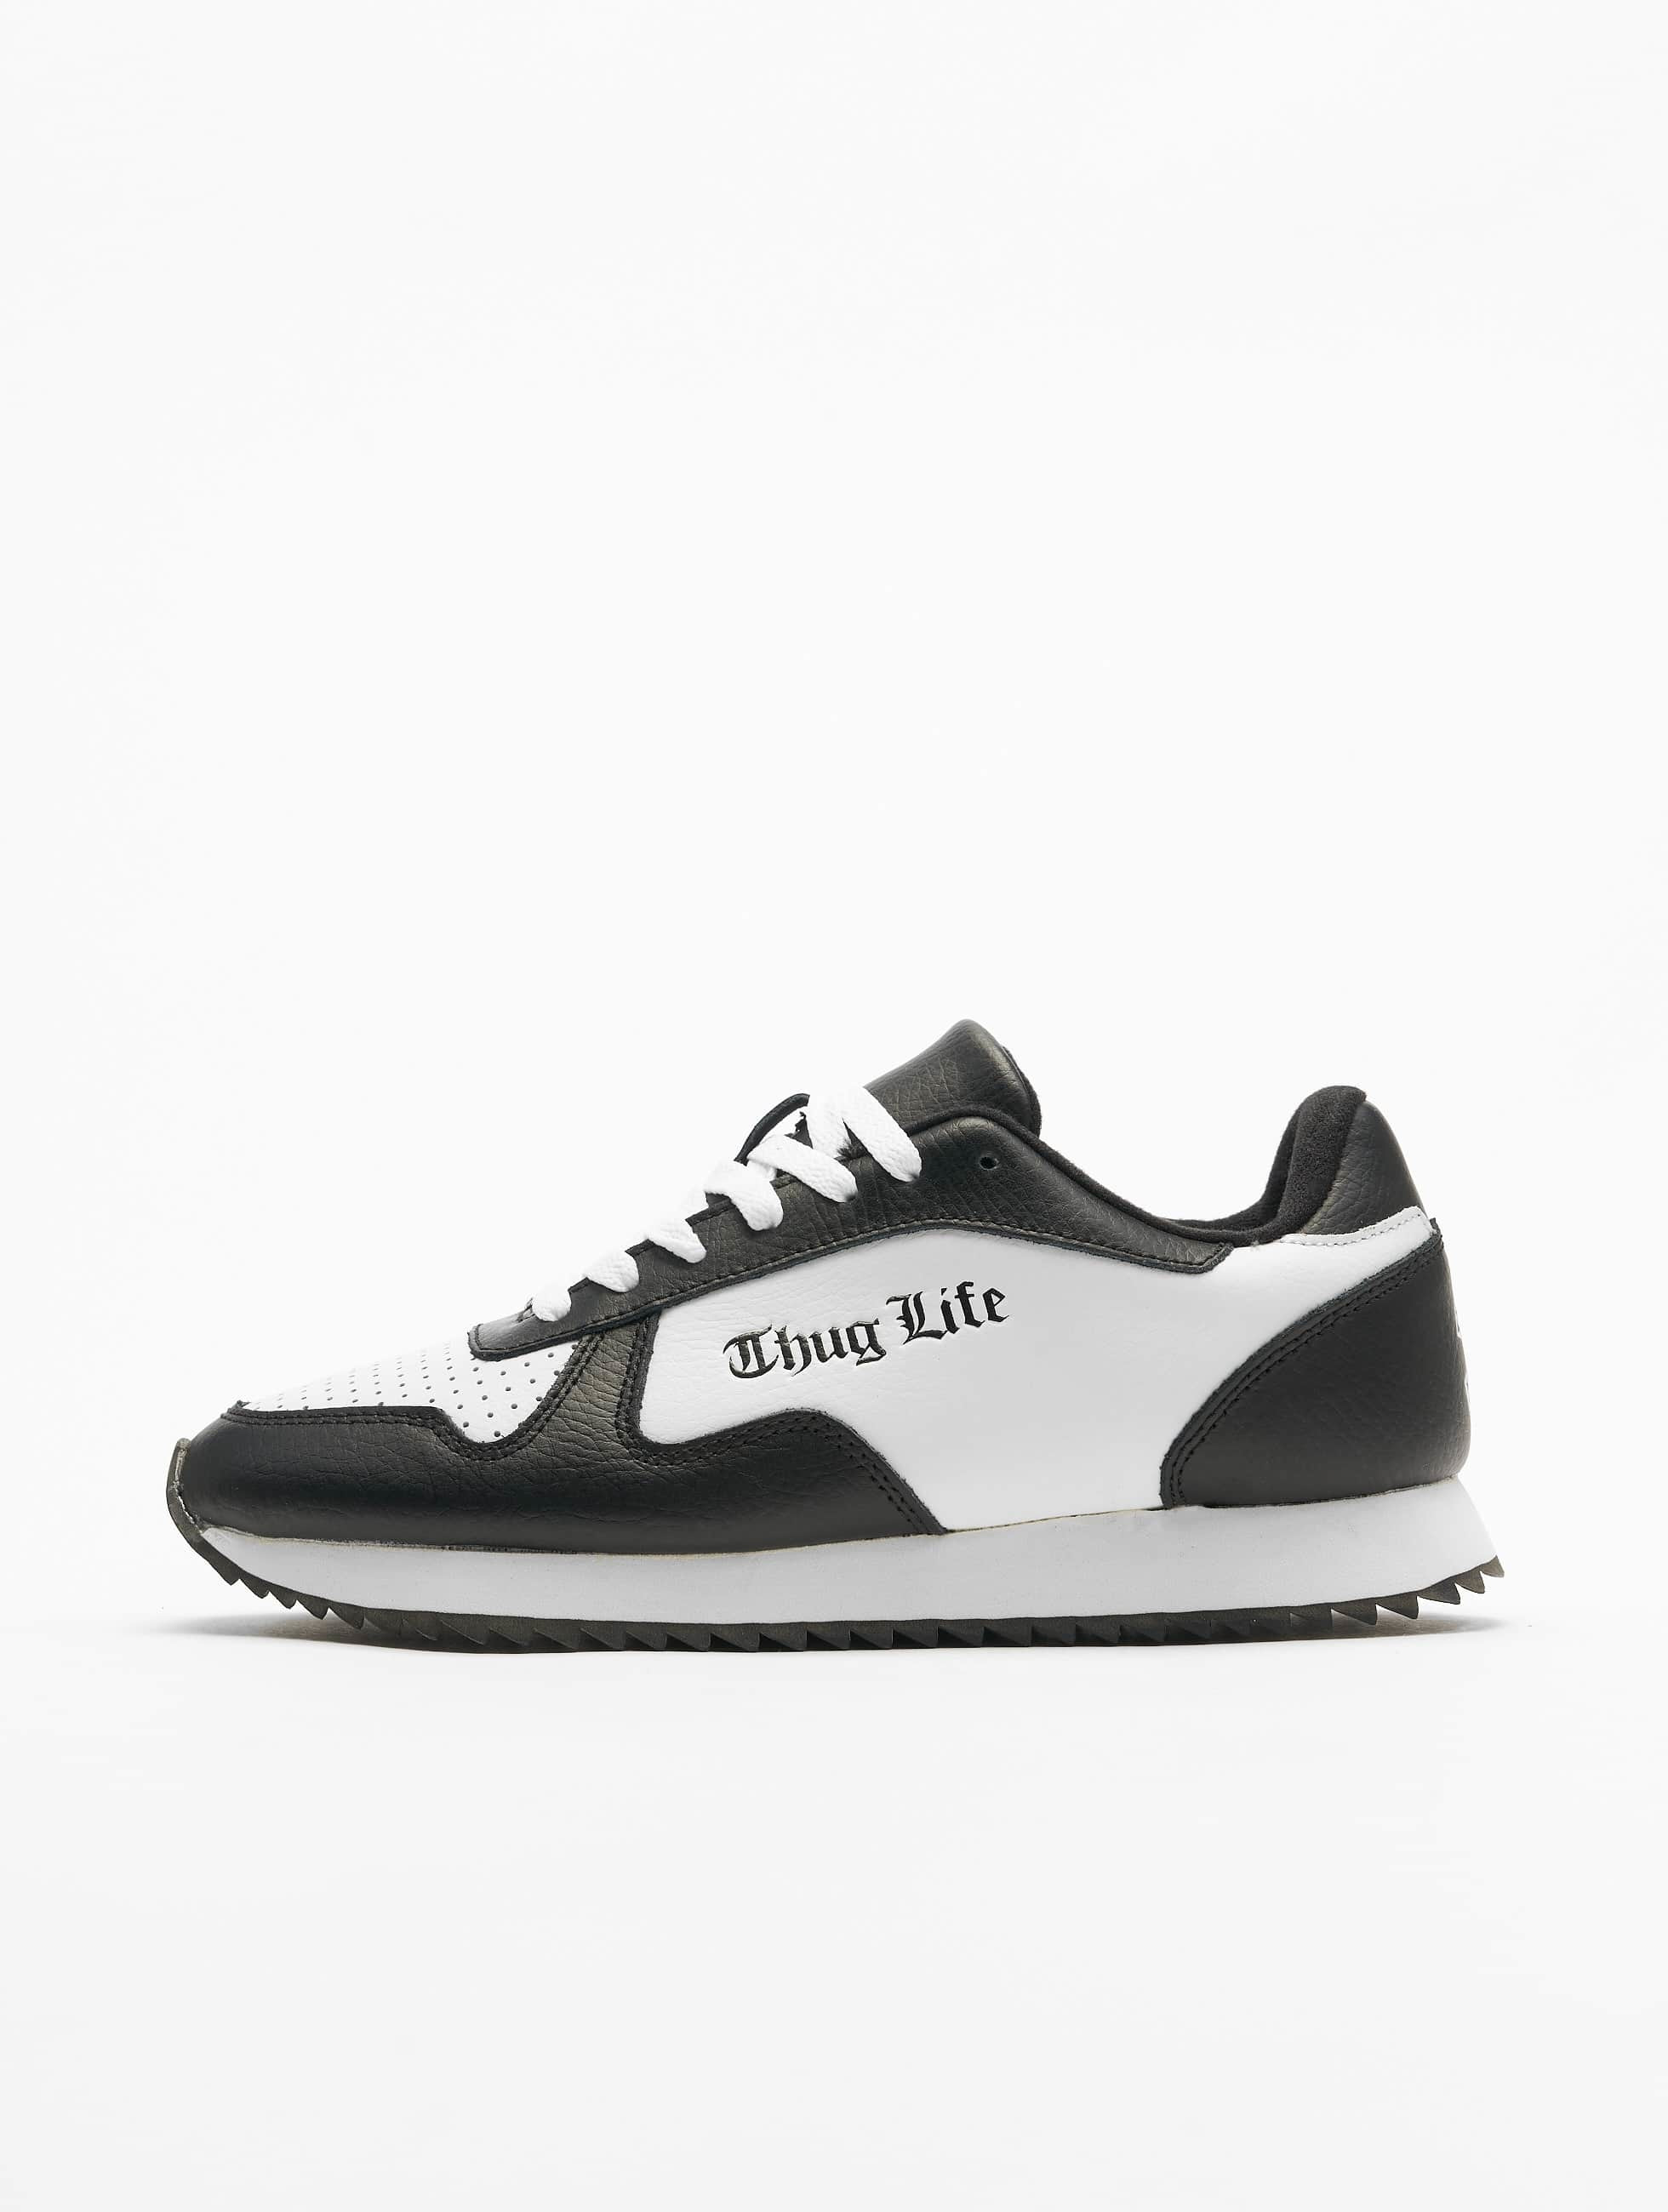 Thug Life / Sneakers 187 in white 46